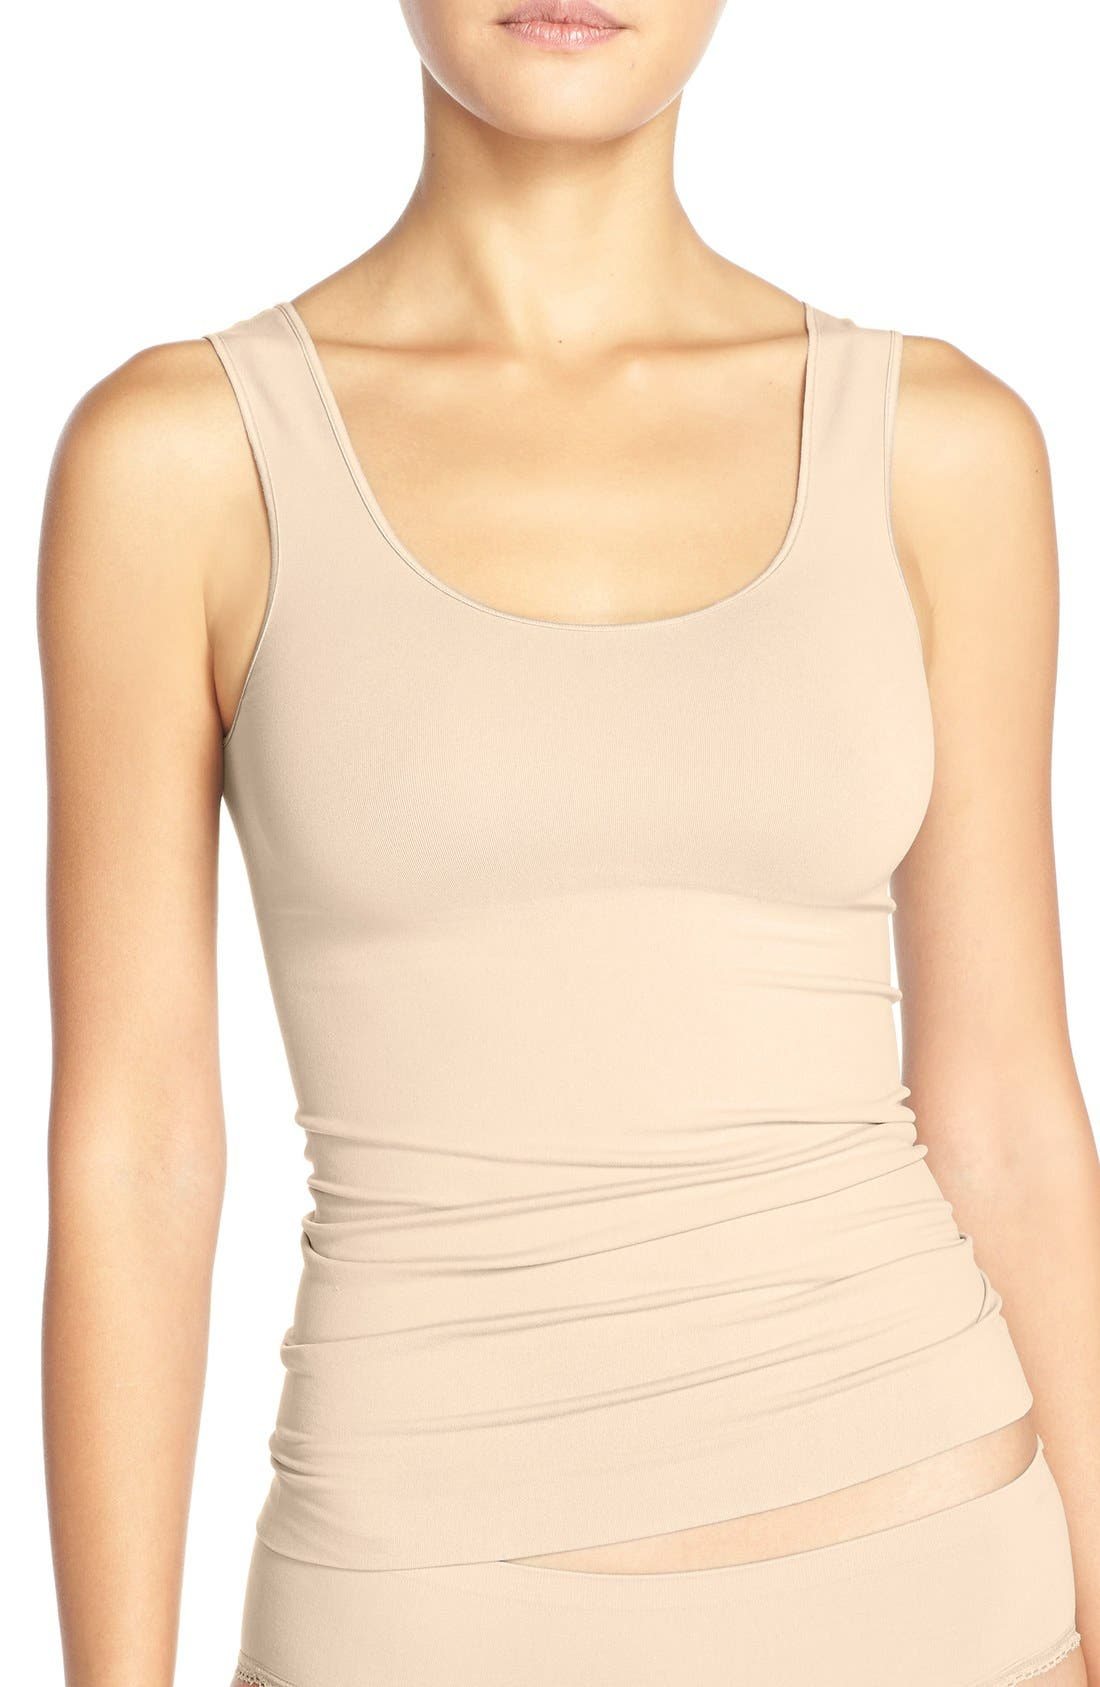 Nordstrom Lingerie Two-Way Seamless Tank (2 for $48)